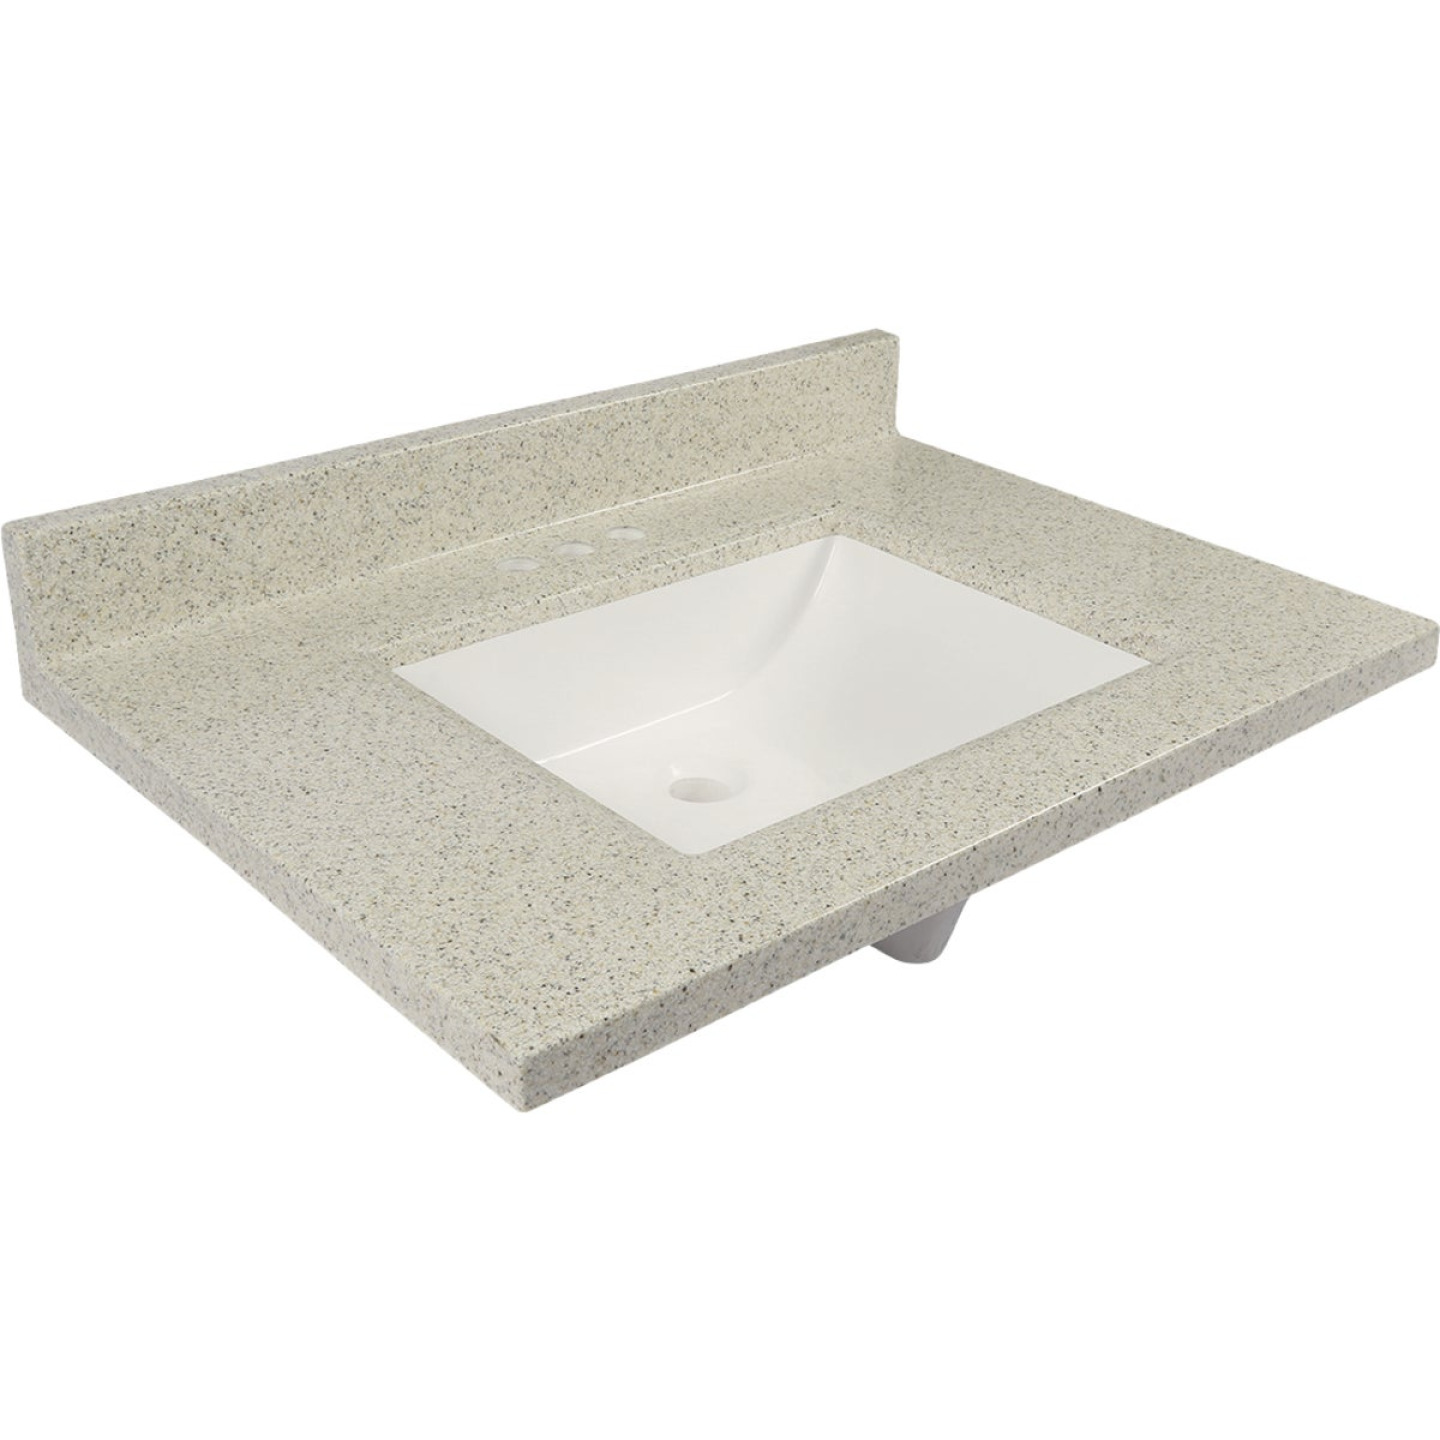 Modular Vanity Tops 31 In. W x 22 In. D Dune Cultured Marble Vanity Top with Rectangular Wave Bowl Image 1